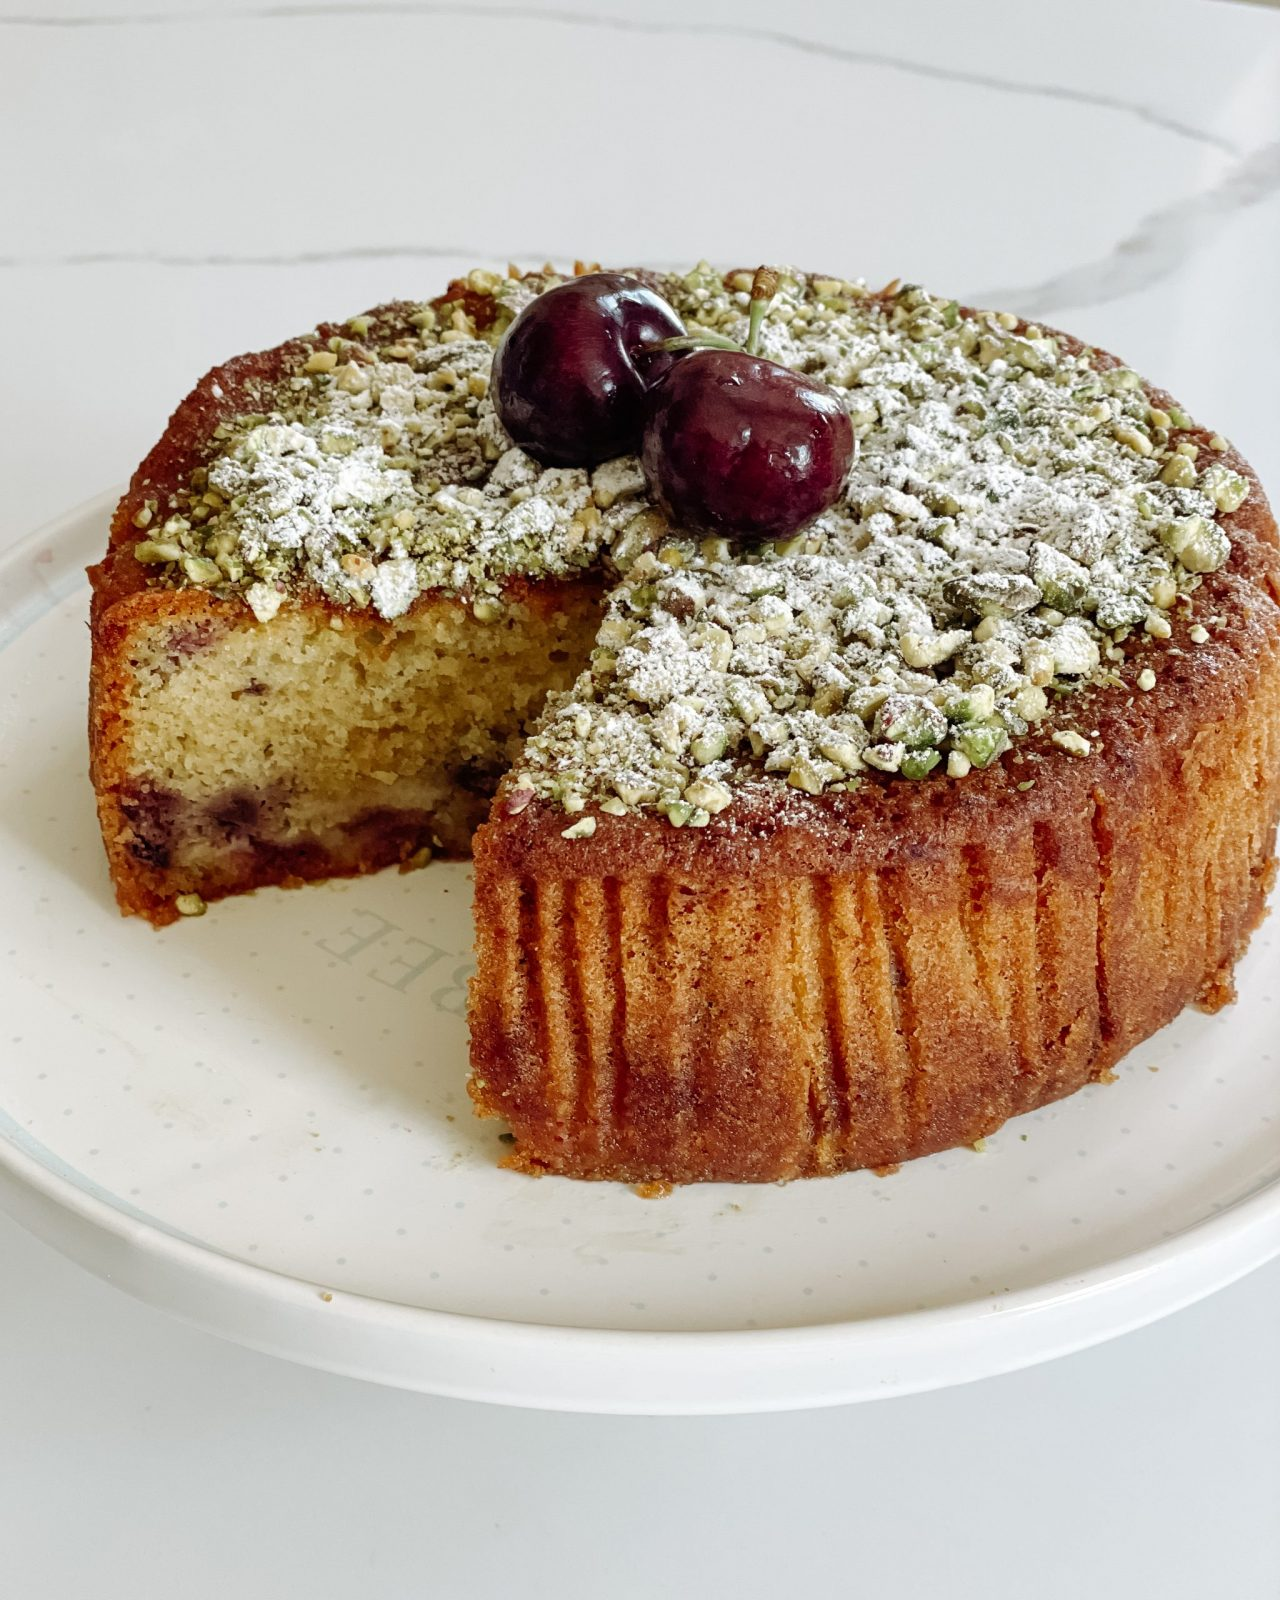 Cherry and Marzipan Cake with Pistachio and Orange Blossom Syrup